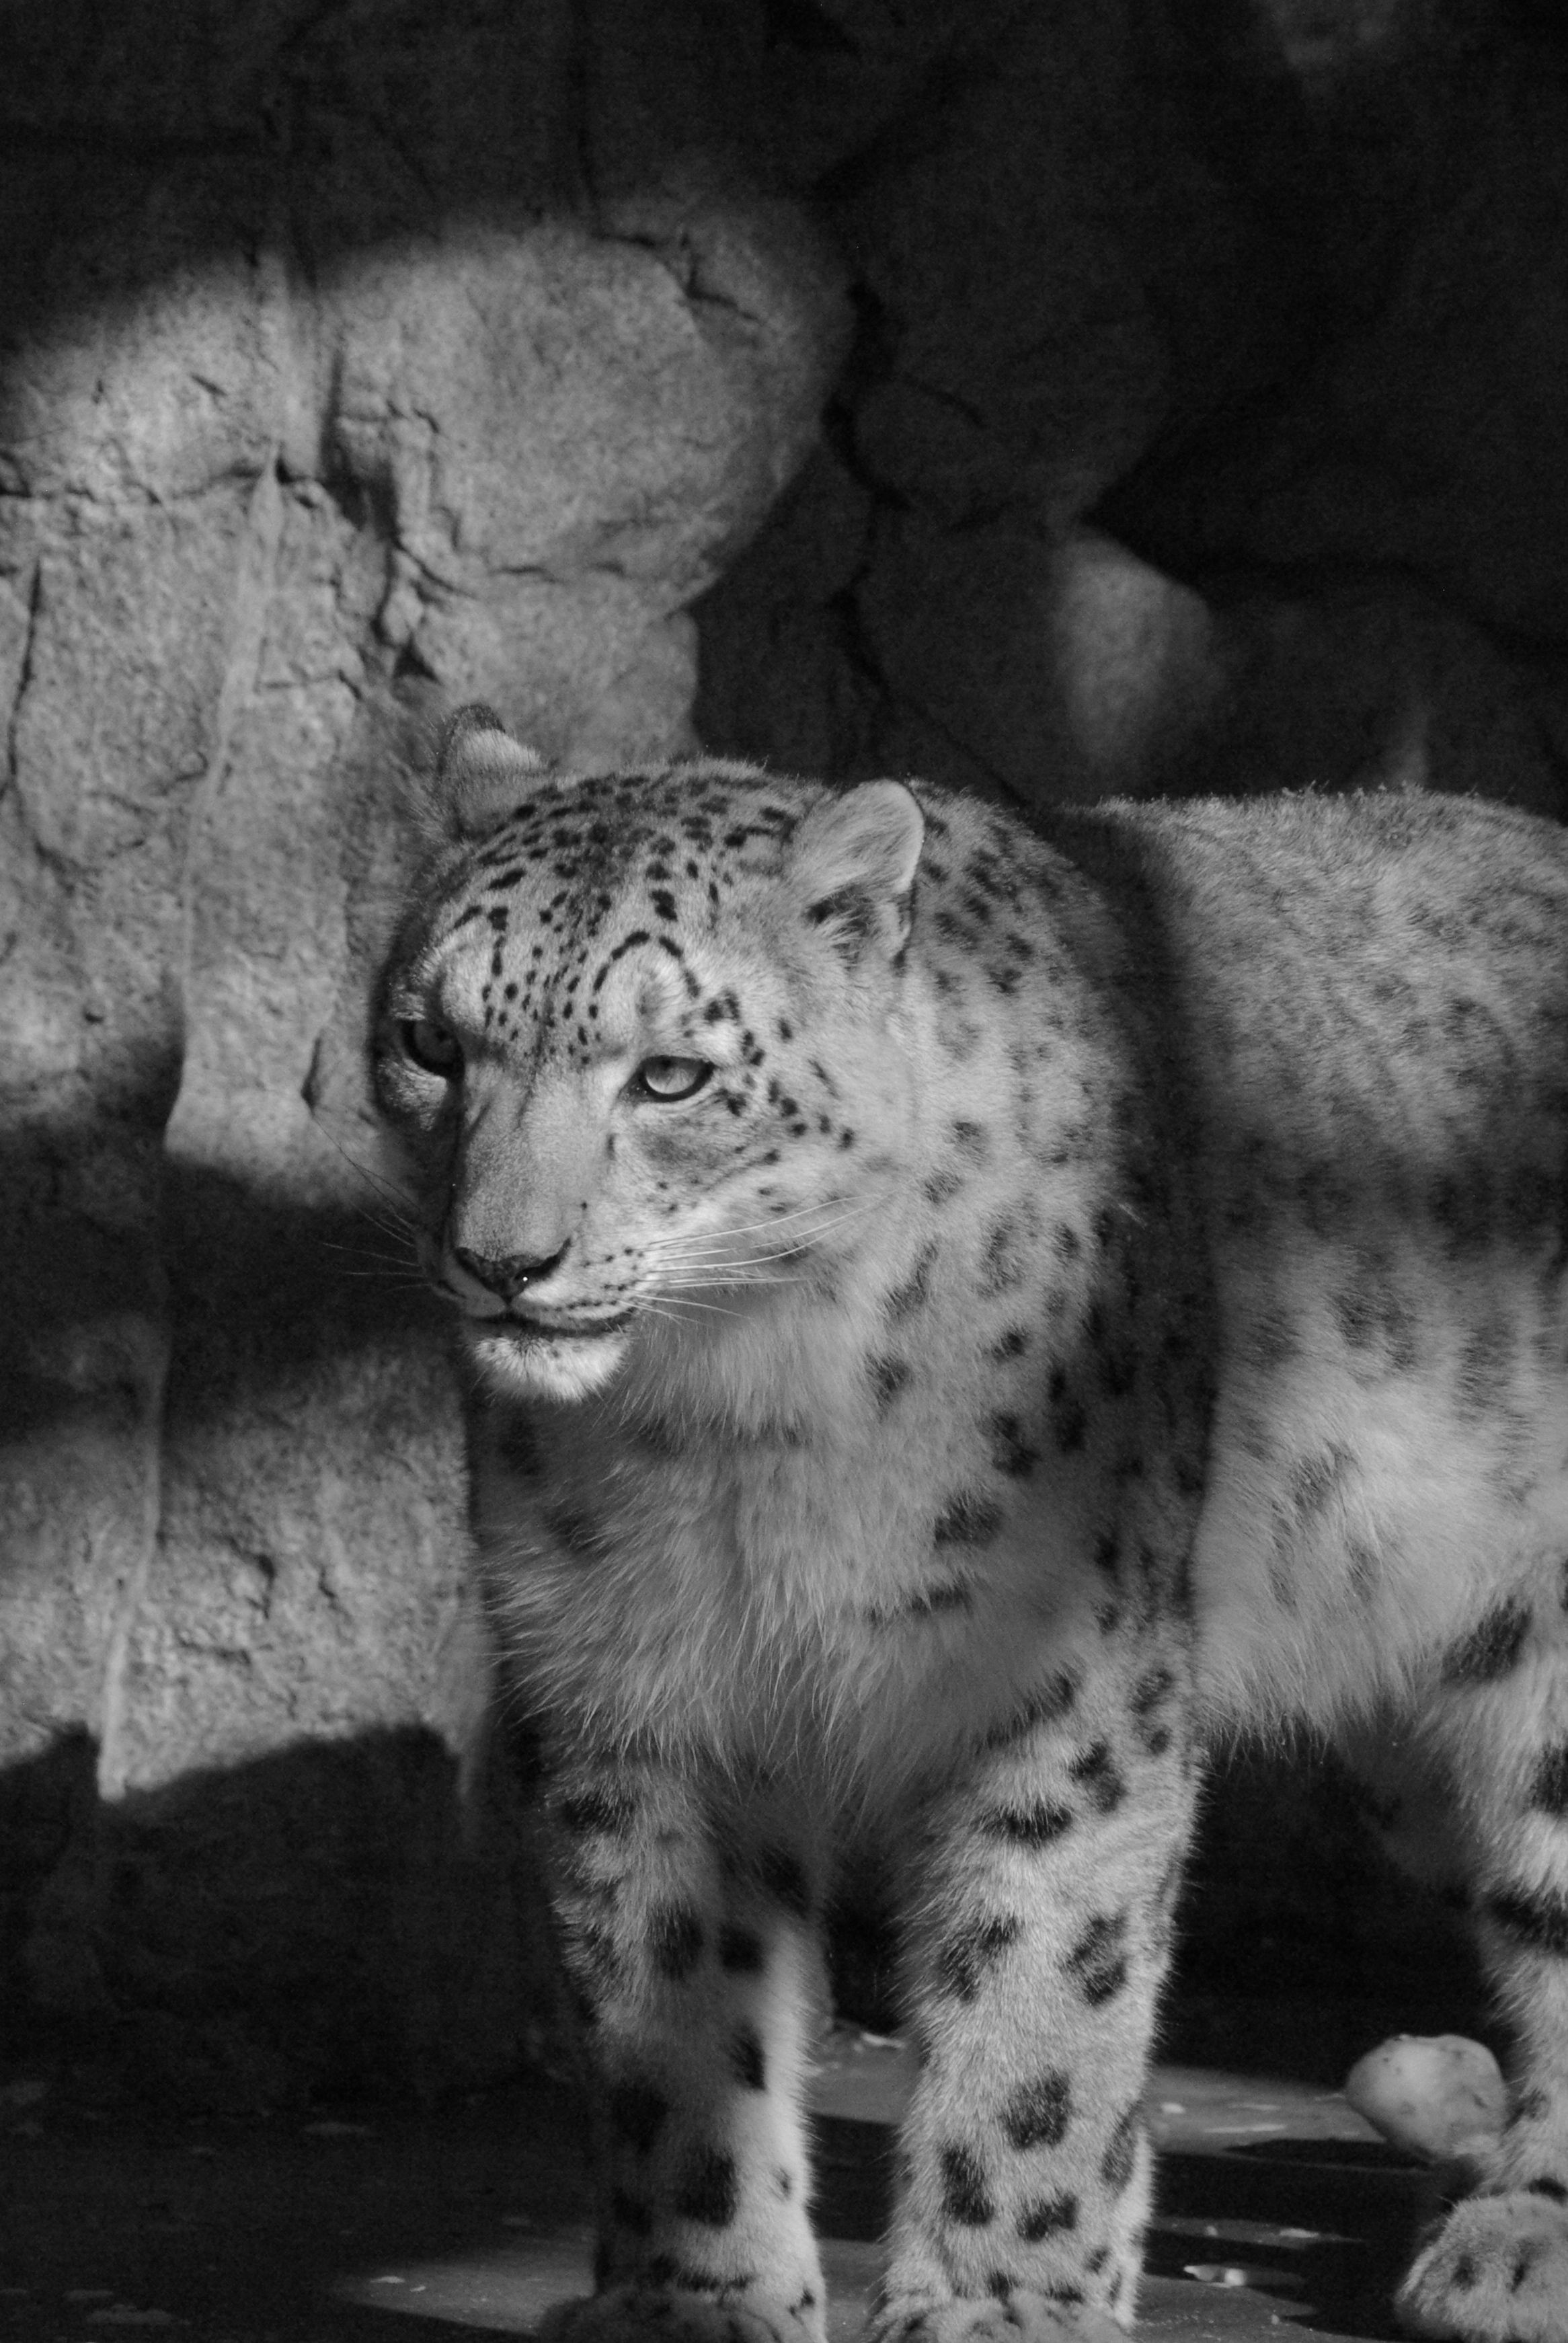 Anthro snow leopard male - photo#13